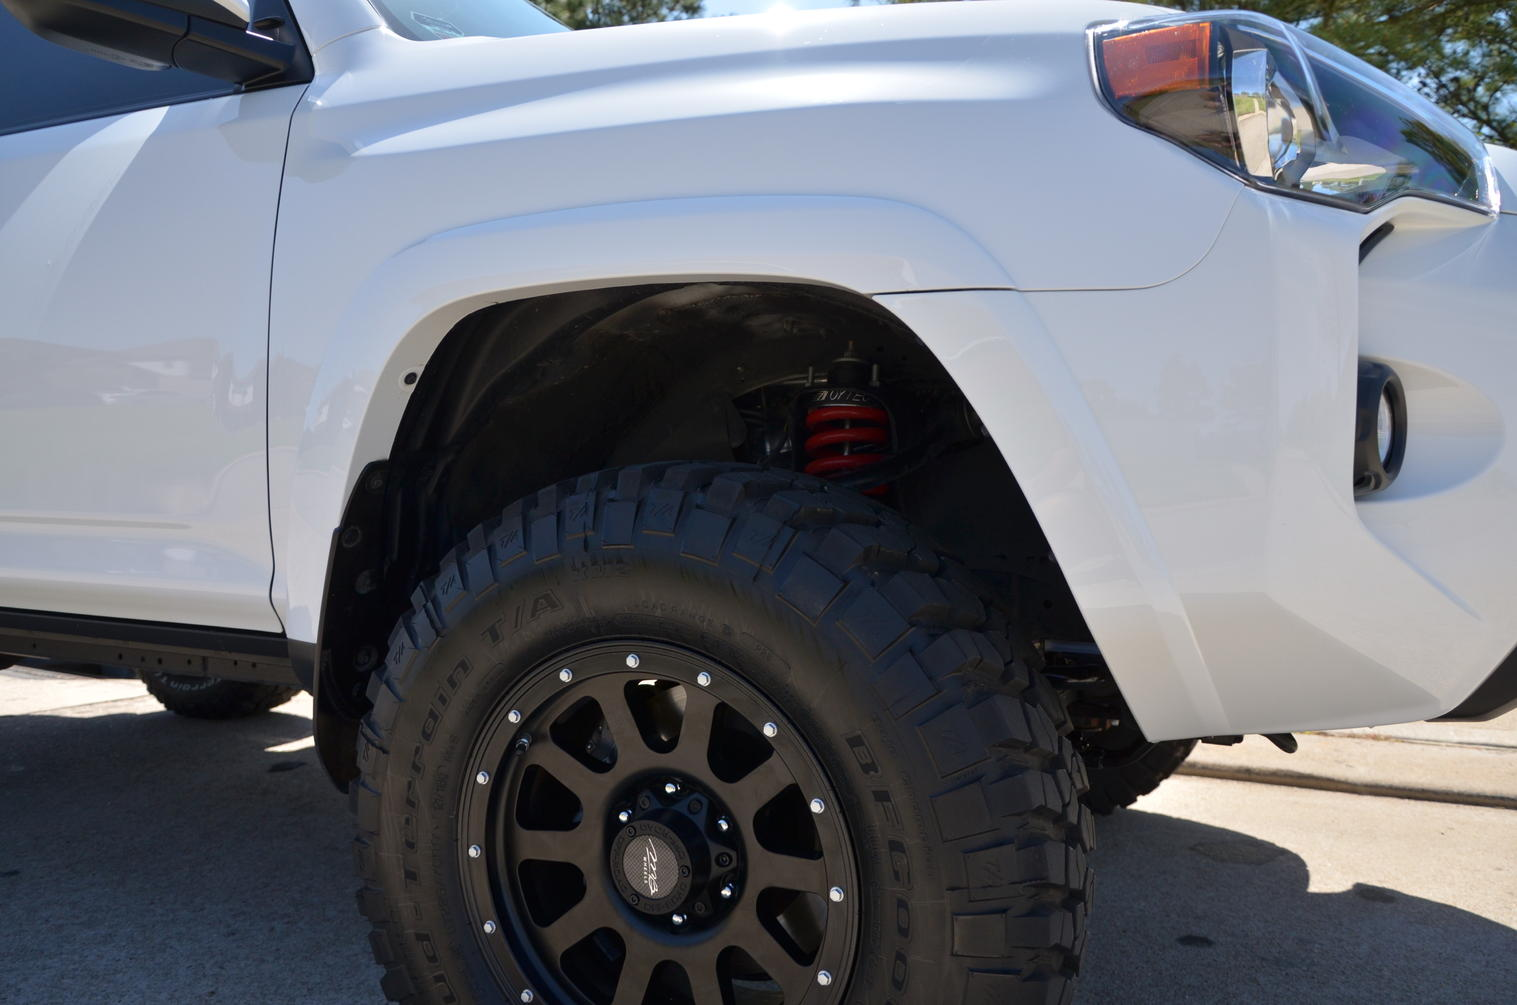 2016 Toyota Ta a Pocket Style Fender Flares P 6284 in addition Get Extreme Get Dirty Get 2017 Toyota Ta a Trd Pro additionally Toyota Fj Winch Mount Bumper as well Photo 08 furthermore Autos Usados Llantas Anchas Nuevas Y Rines De Ta a 17. on toyota tacoma baja suspension